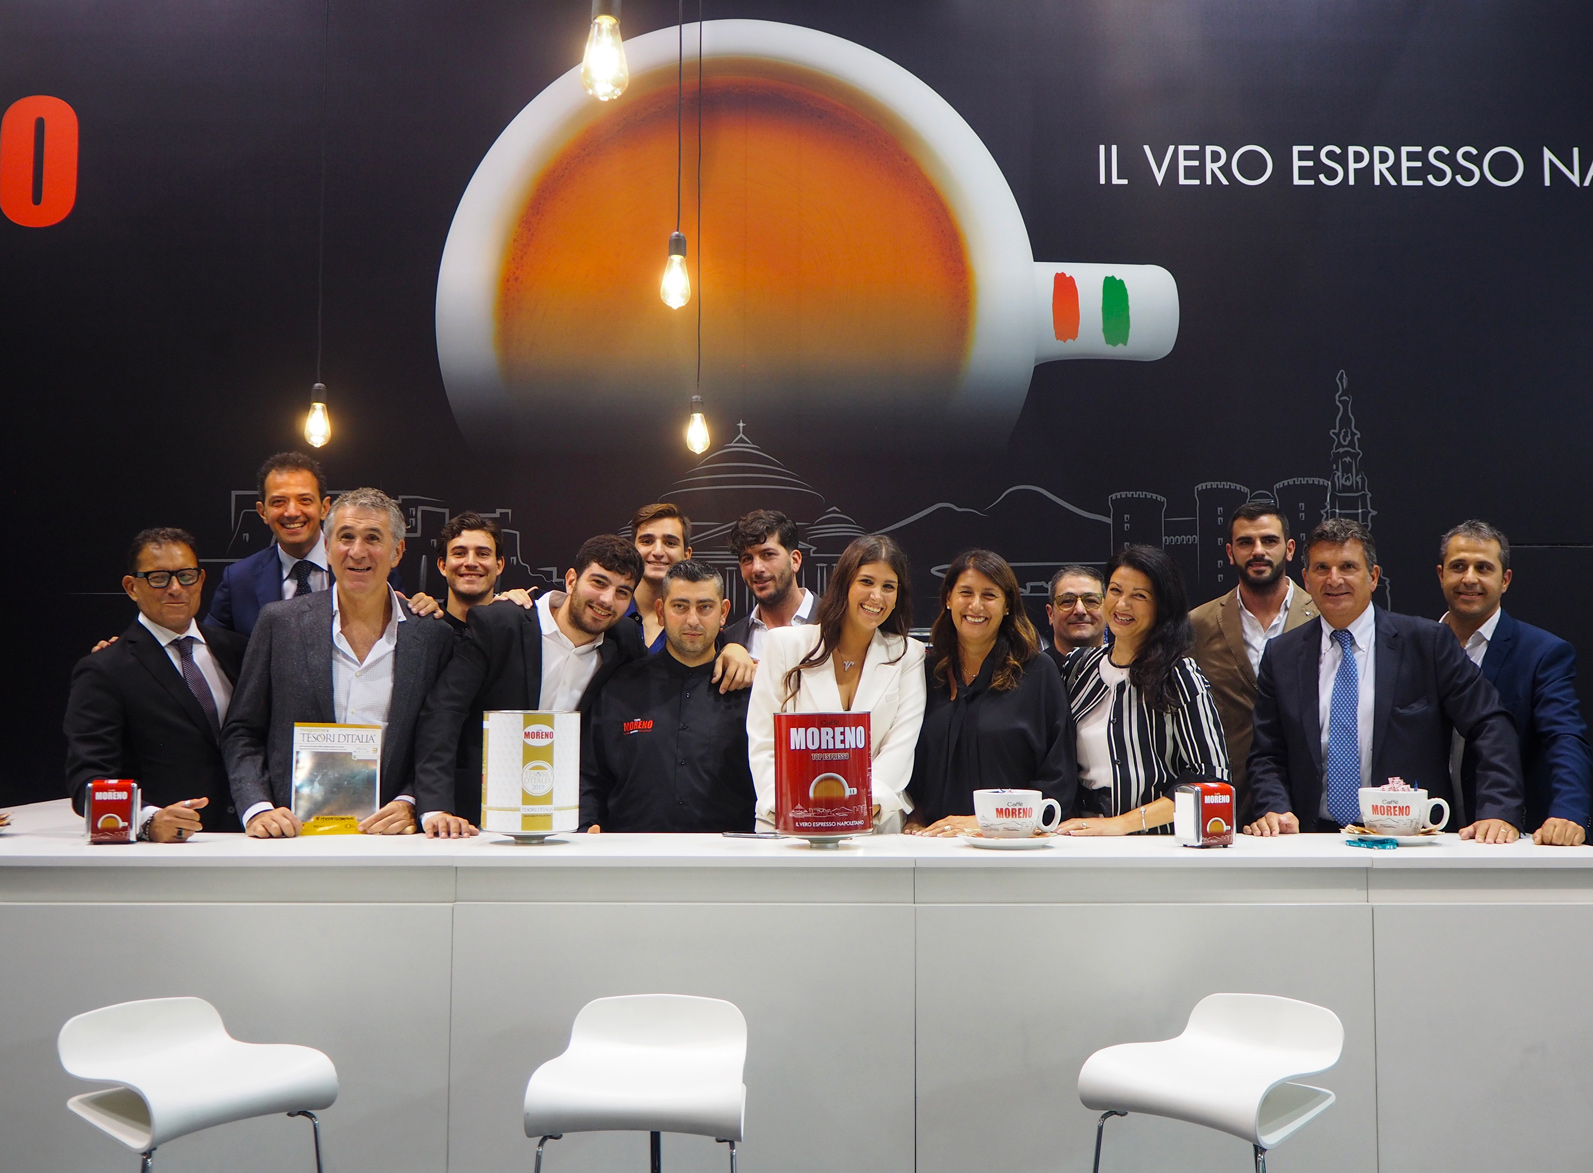 Private Label di Tesori d'Italia: anteprima all'Host di Milano con Caffè Moreno